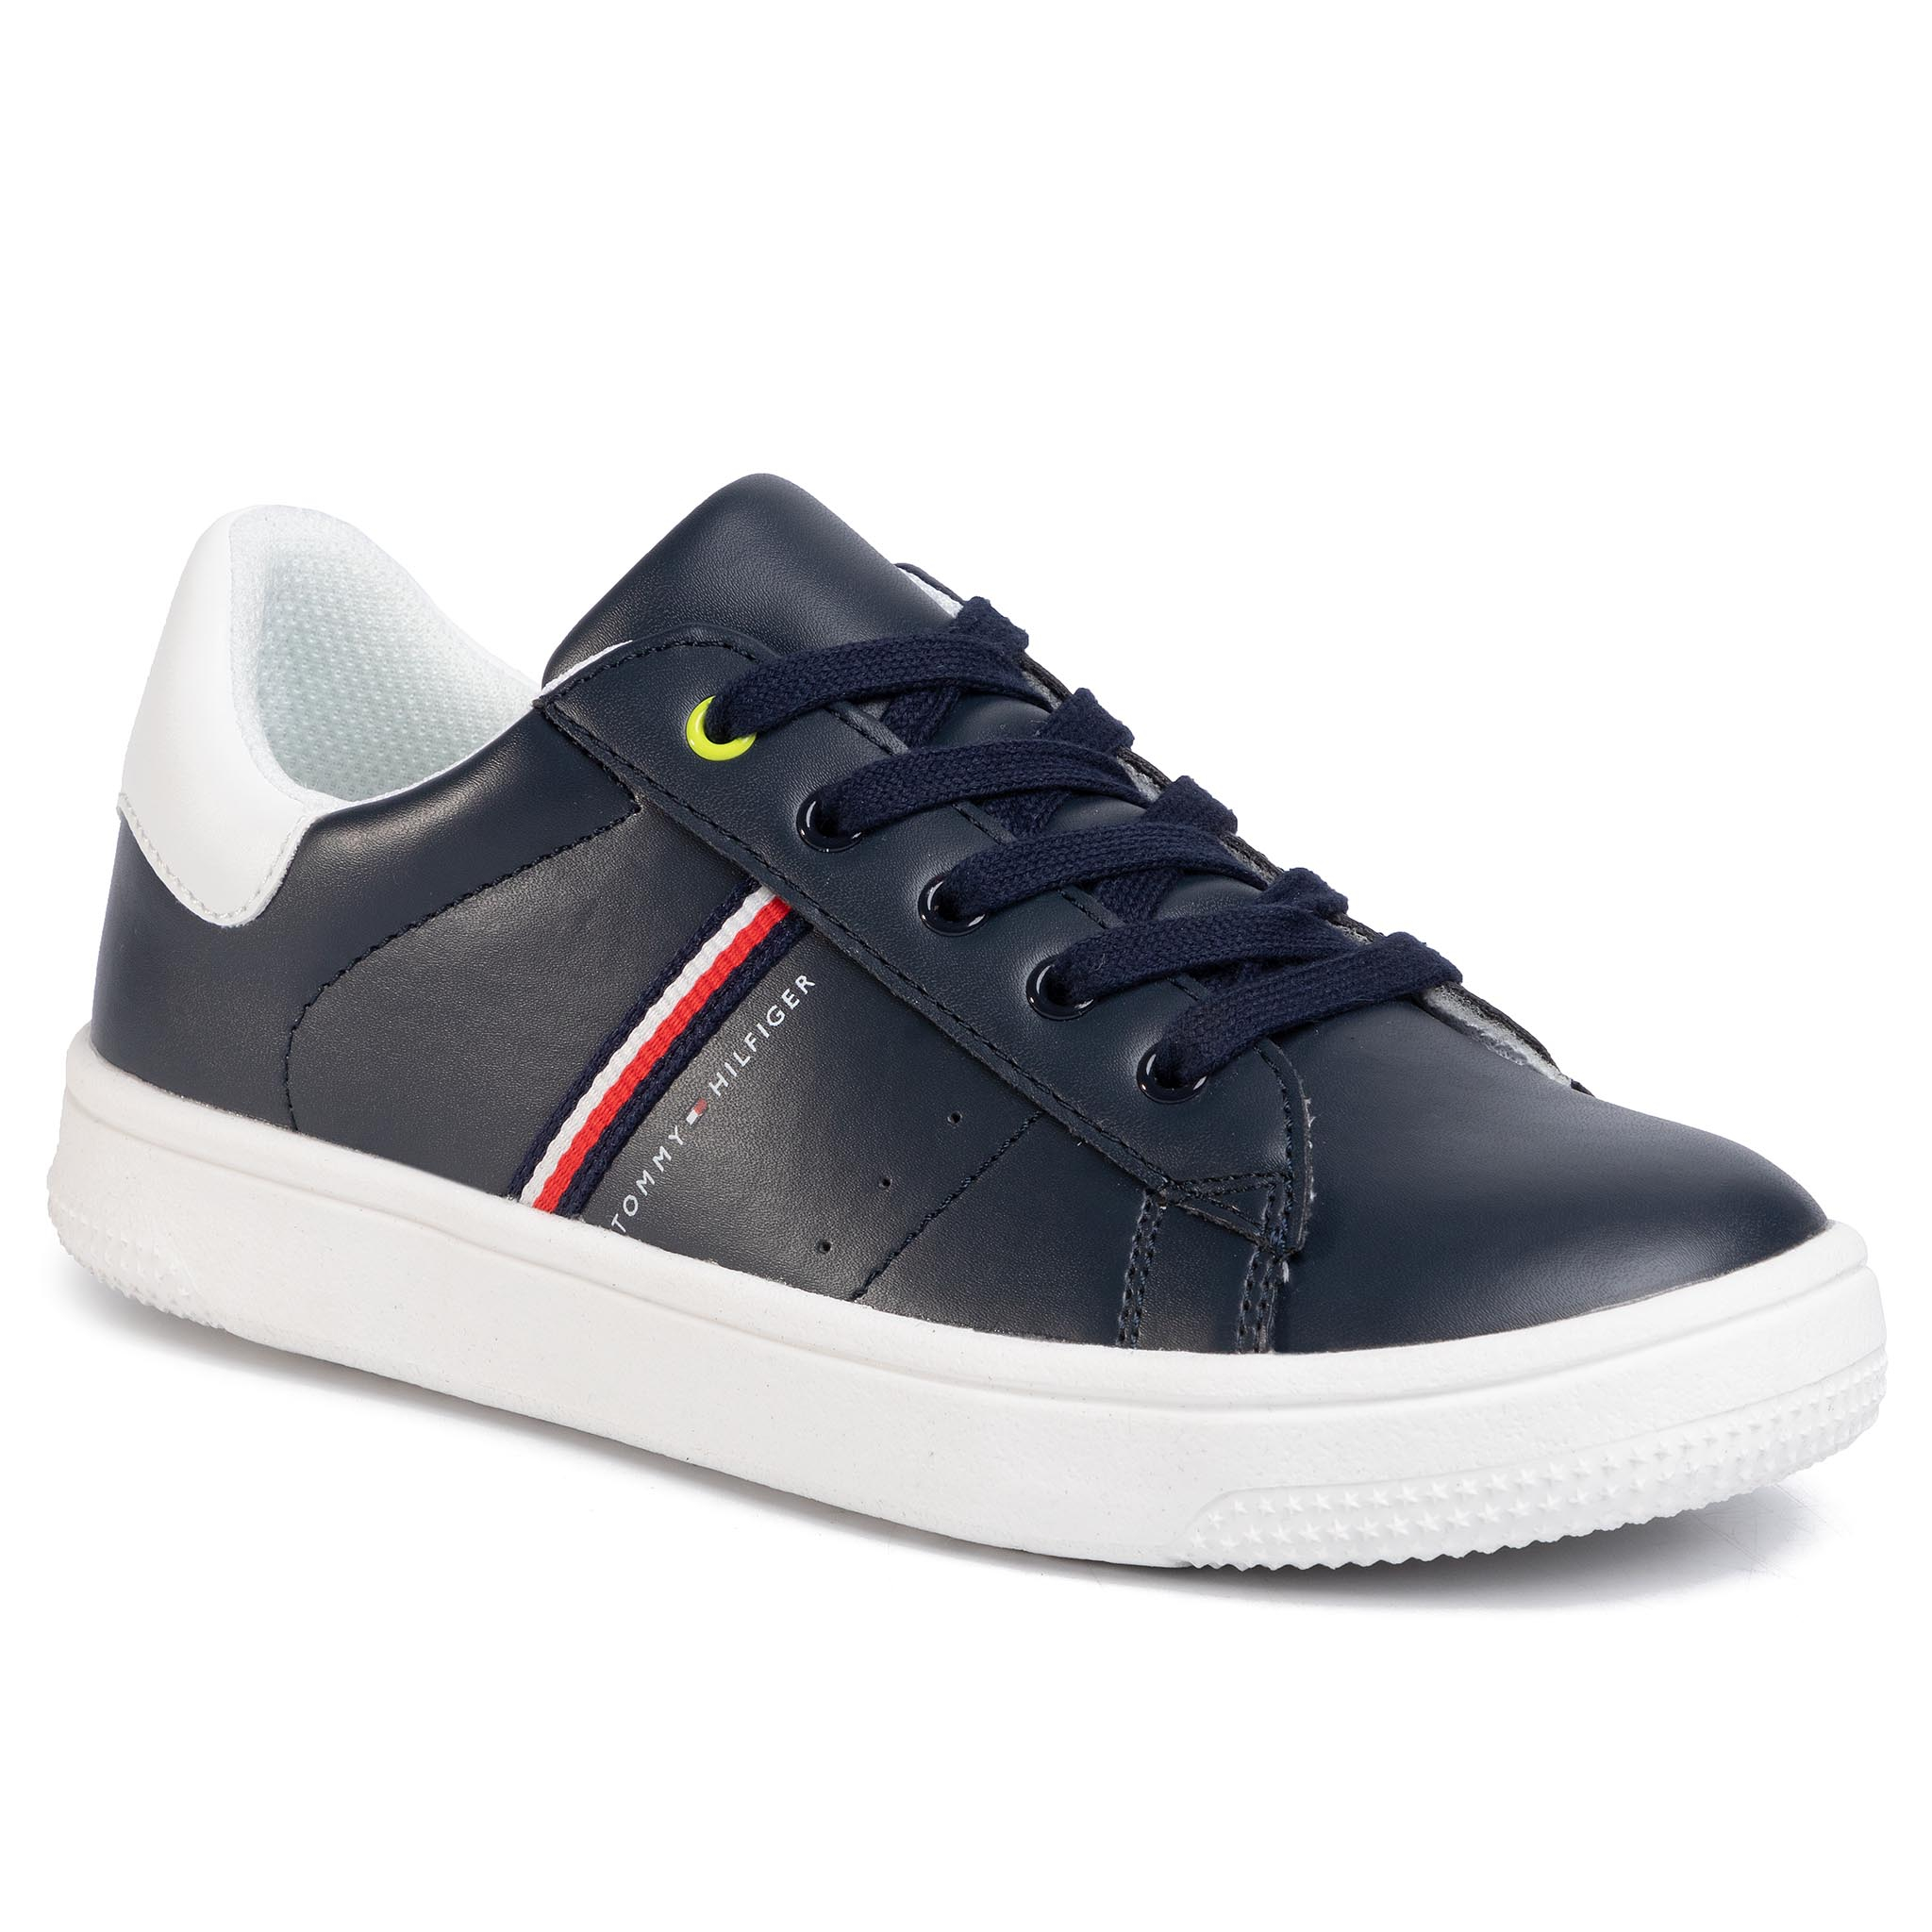 Sneakers TOMMY HILFIGER - Low Cut Lace-Up Sneaker T3B4-30709-0621 S Blue/White X007